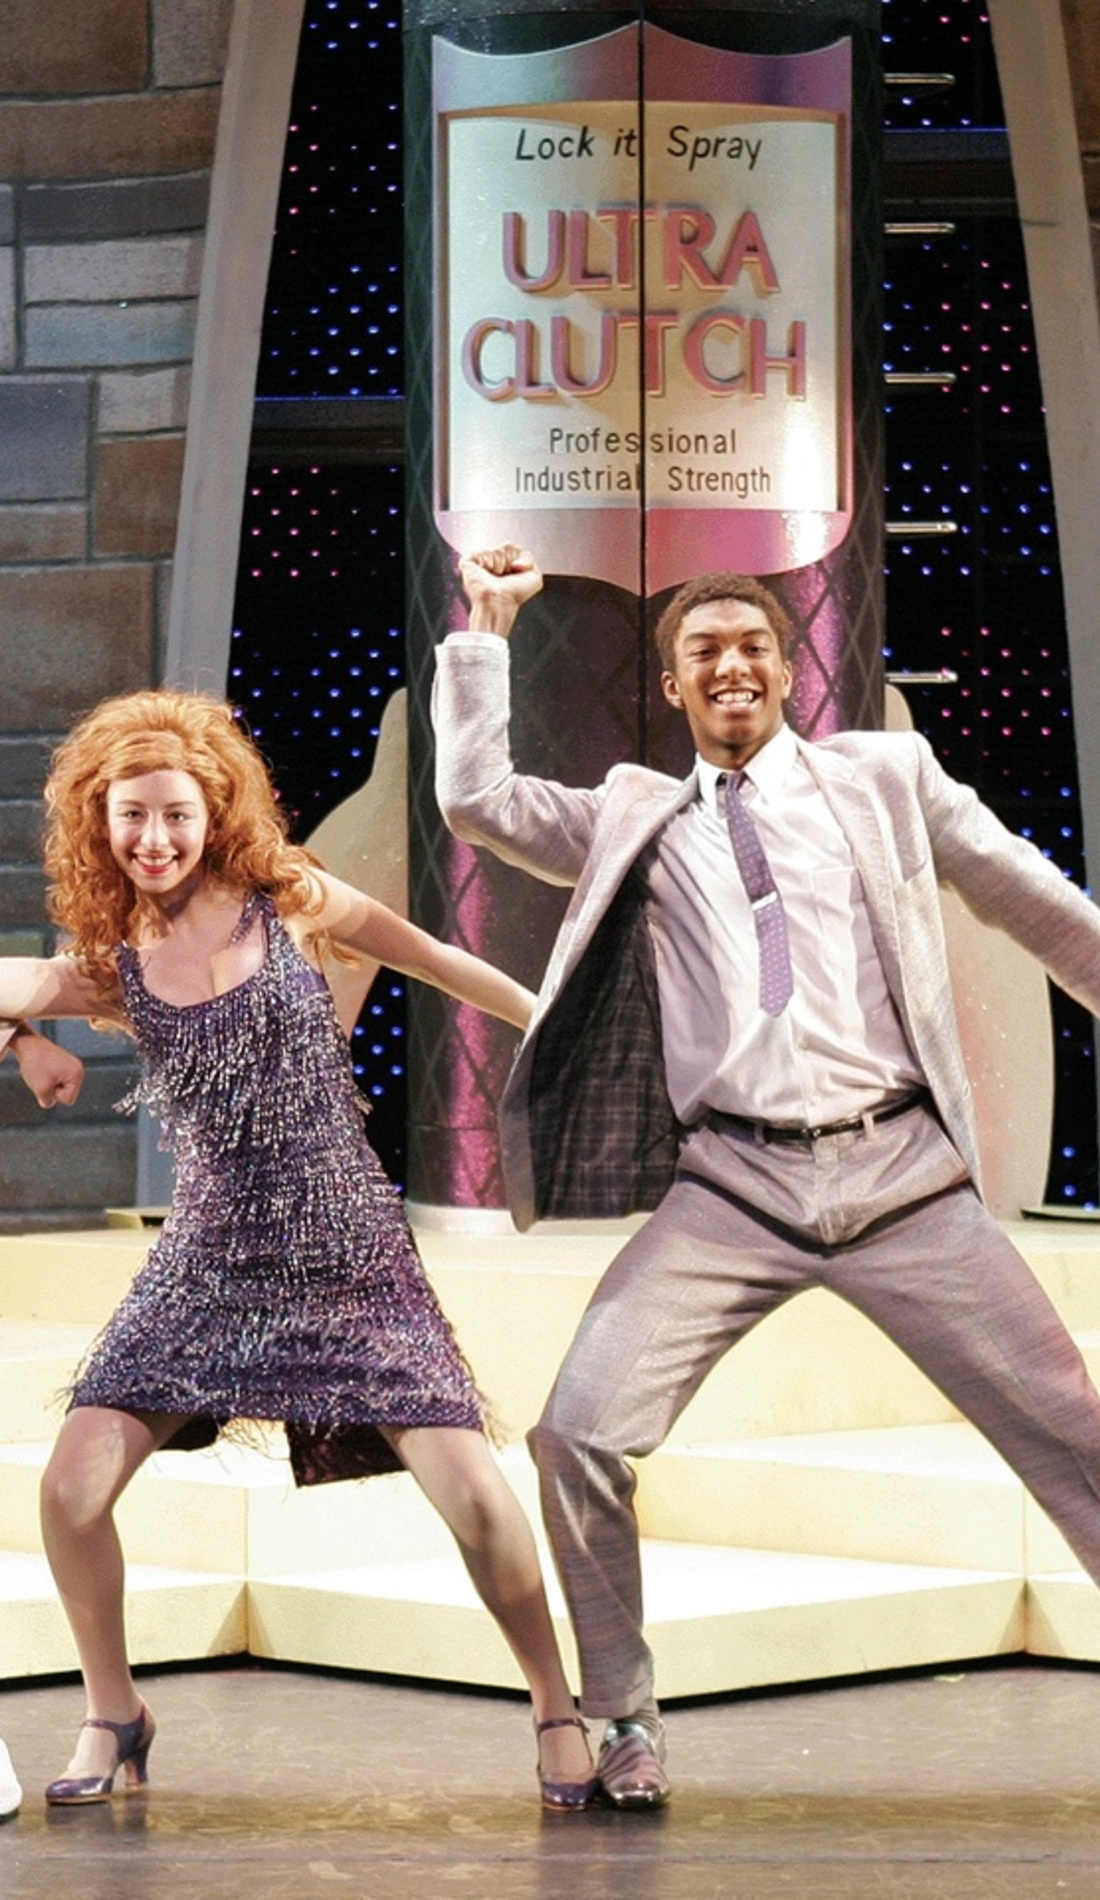 A Hairspray live event